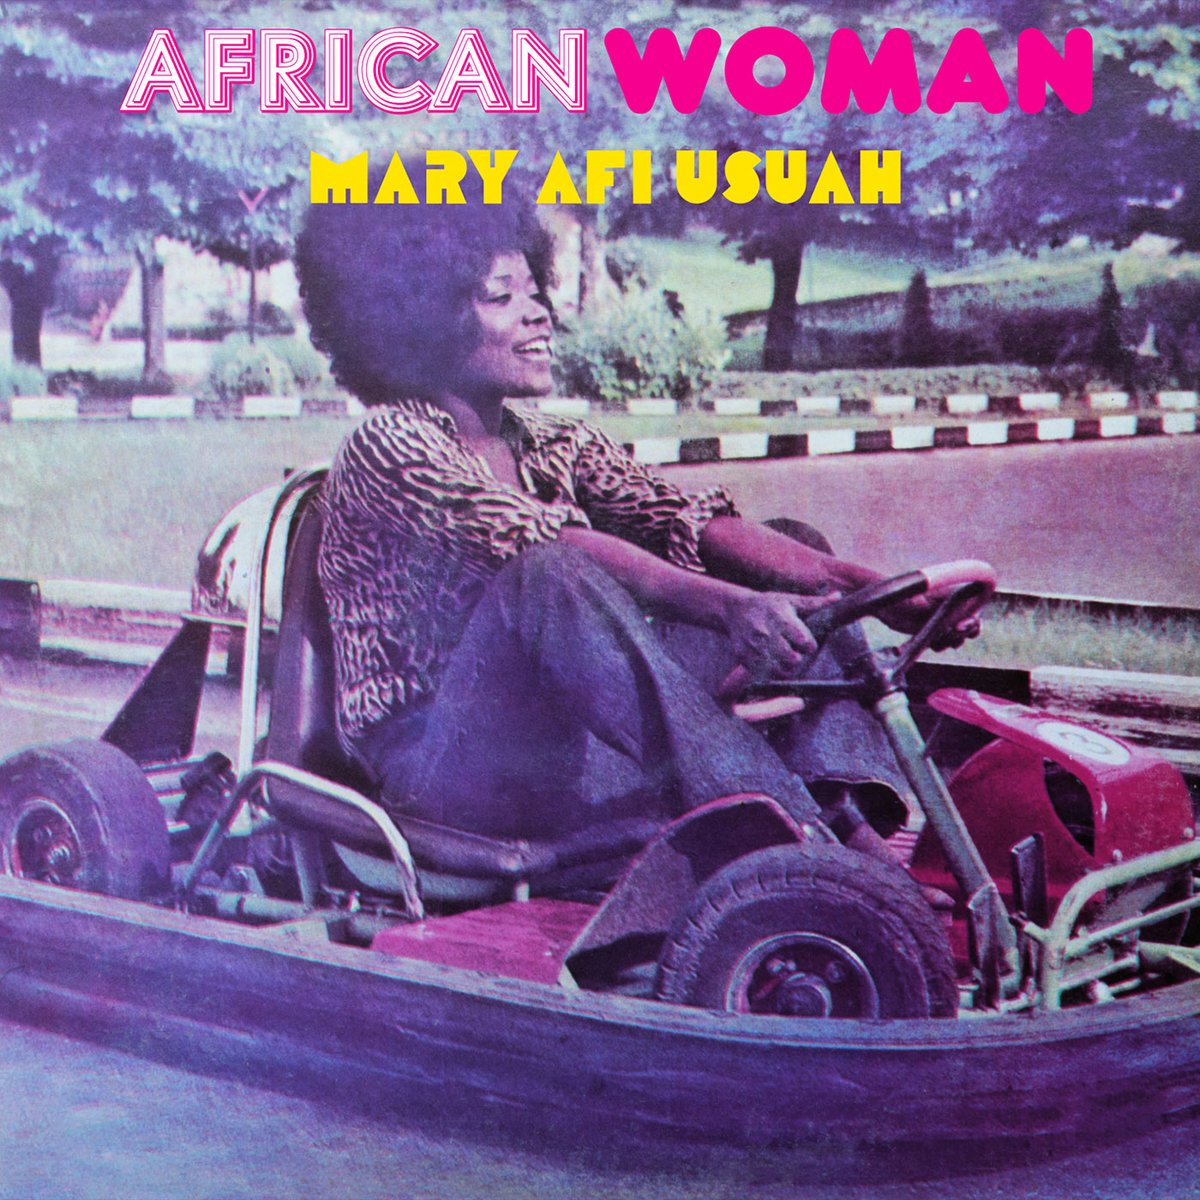 MVR AFI USUAH MARY - AFRICAN WOMAN